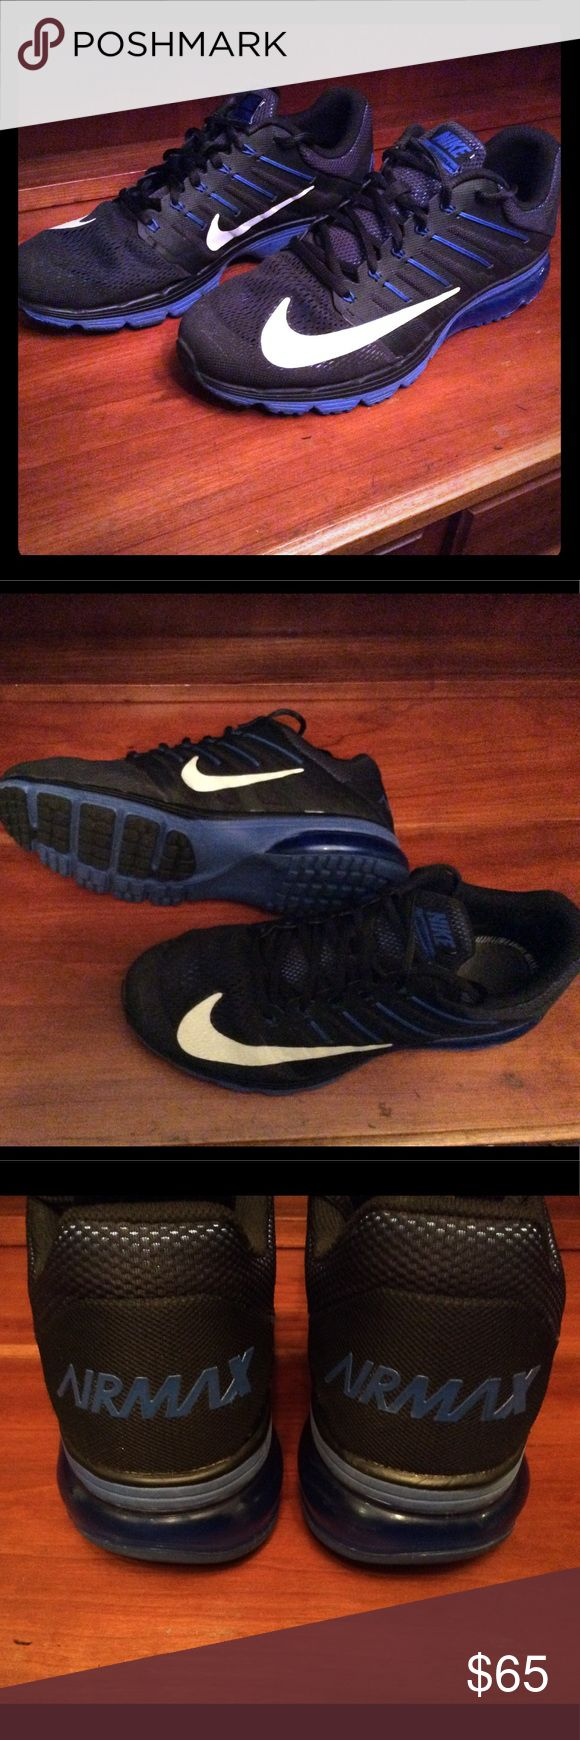 Sz. 11.5 Nike Air Max Excellerate 4 running shoes ⚡️PRICE DROP⚡️ Great/Excellent used condition, light wear on the back heels. Nike Shoes Sneakers